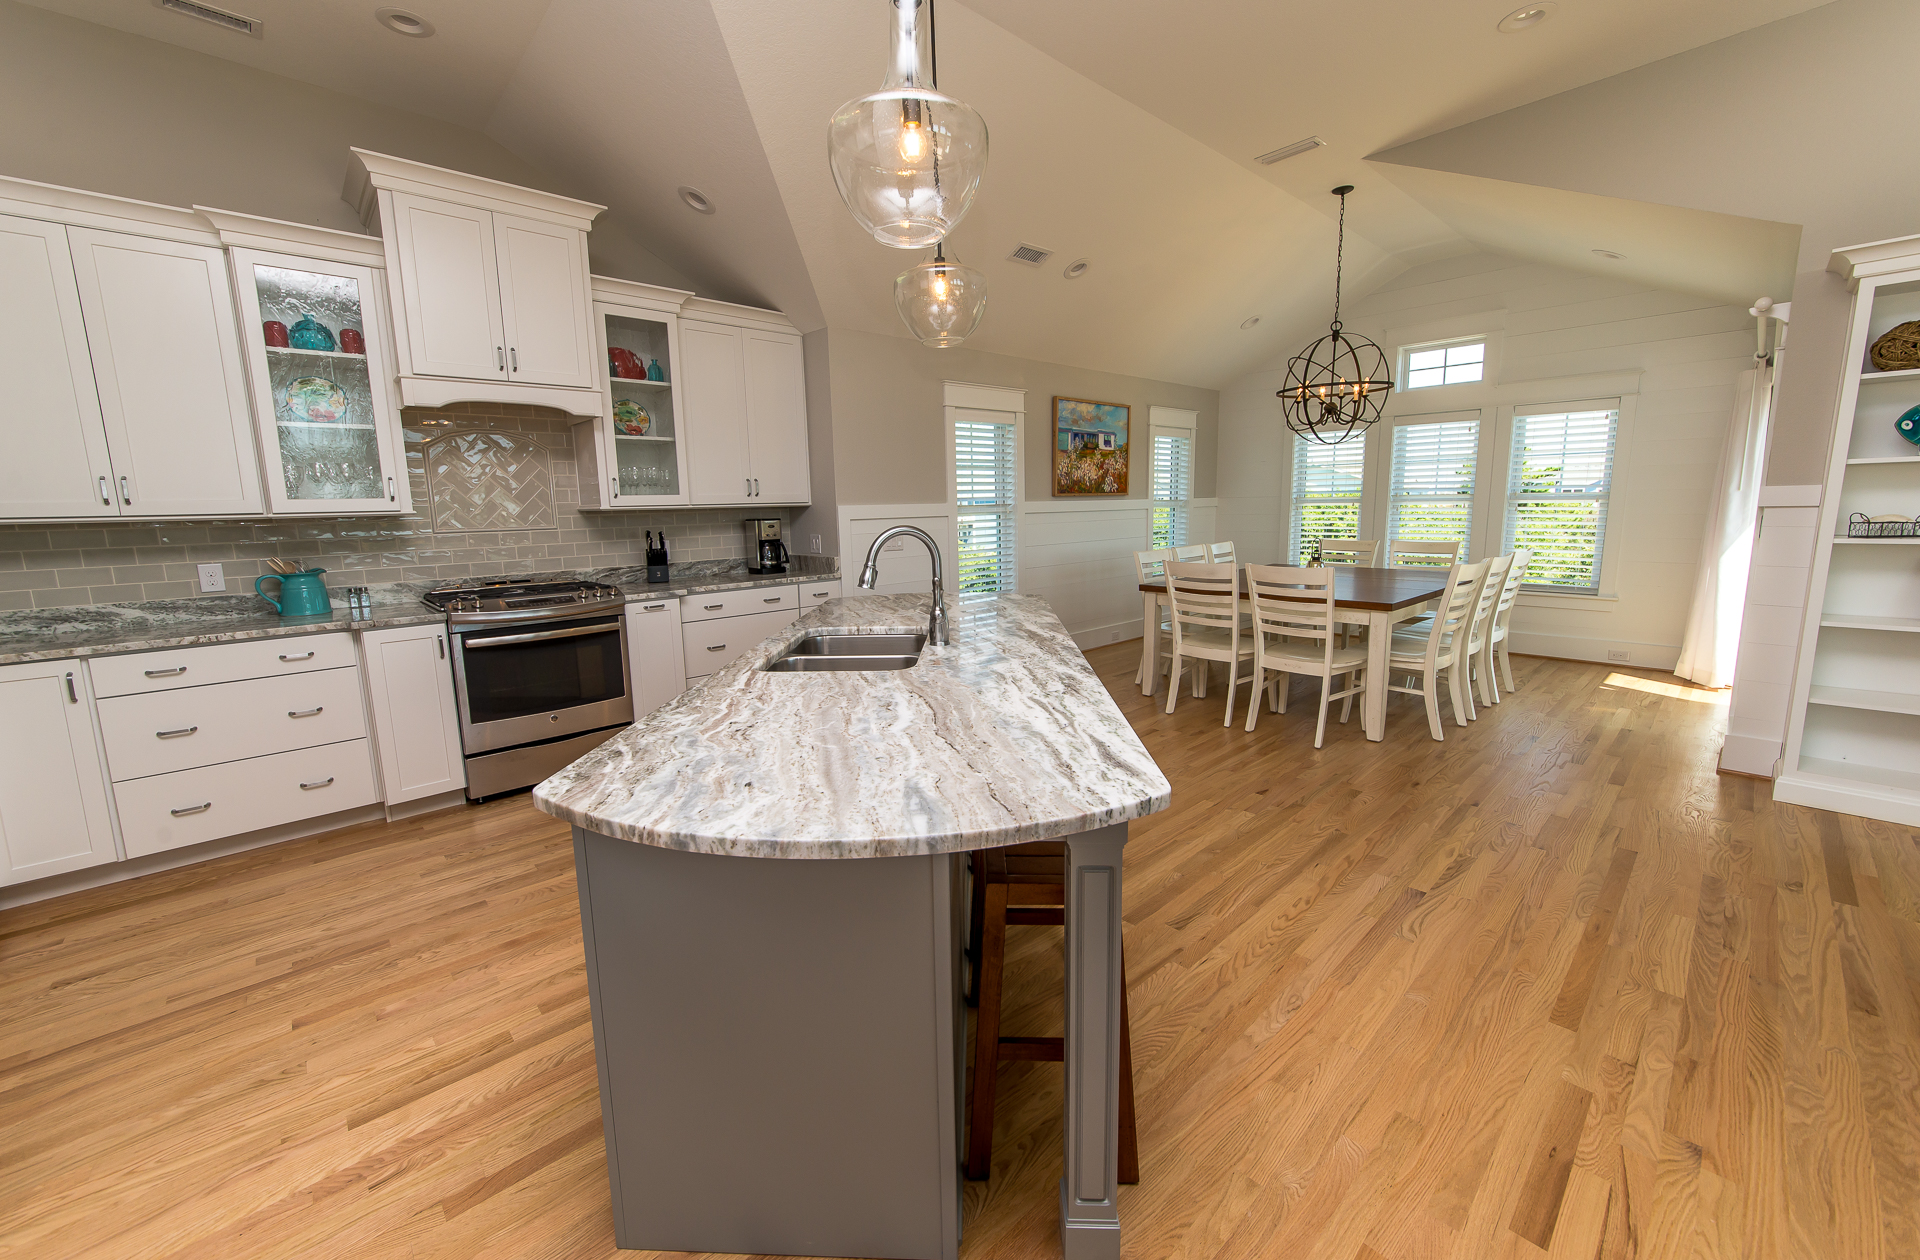 Hardwood floors and open floorplan